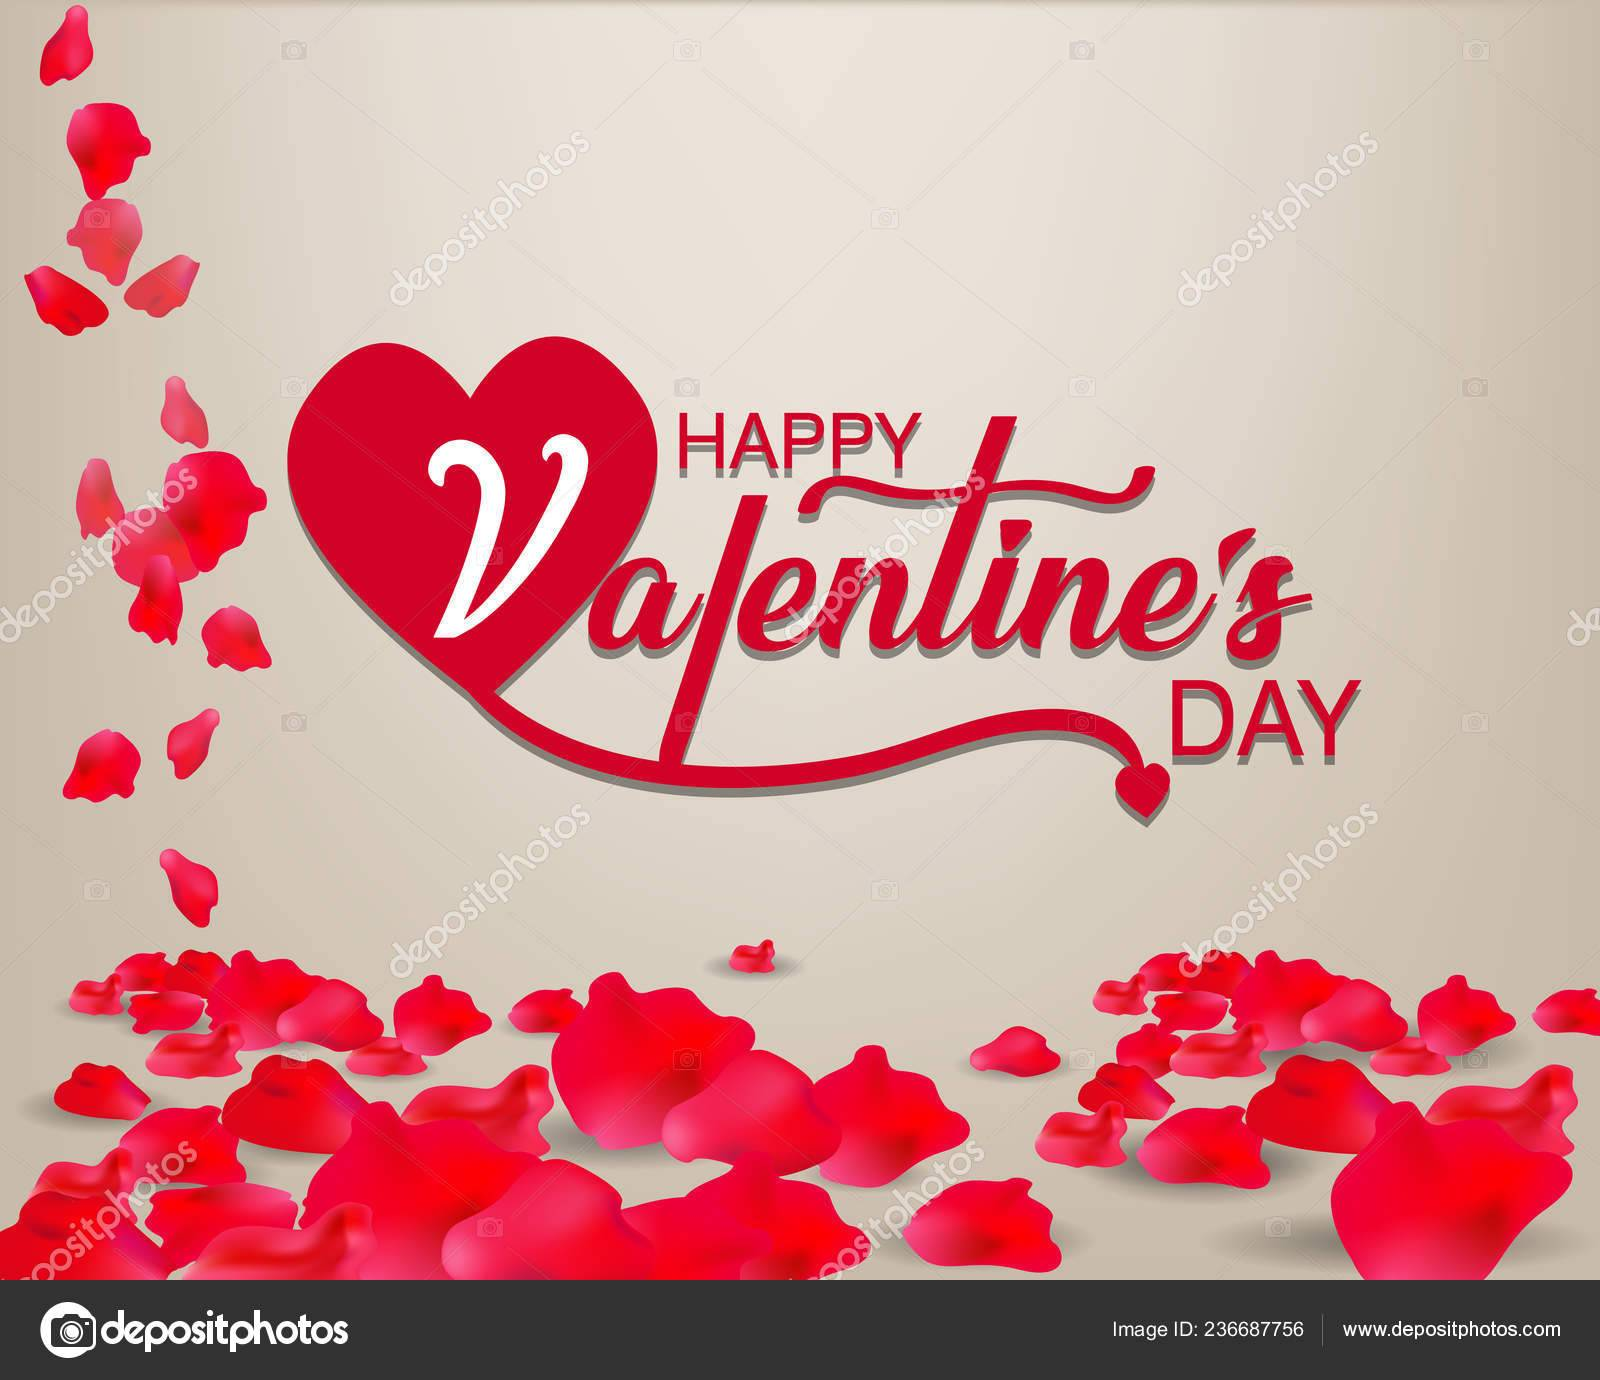 depositphotos stock illustration hand sketched happy valentine day